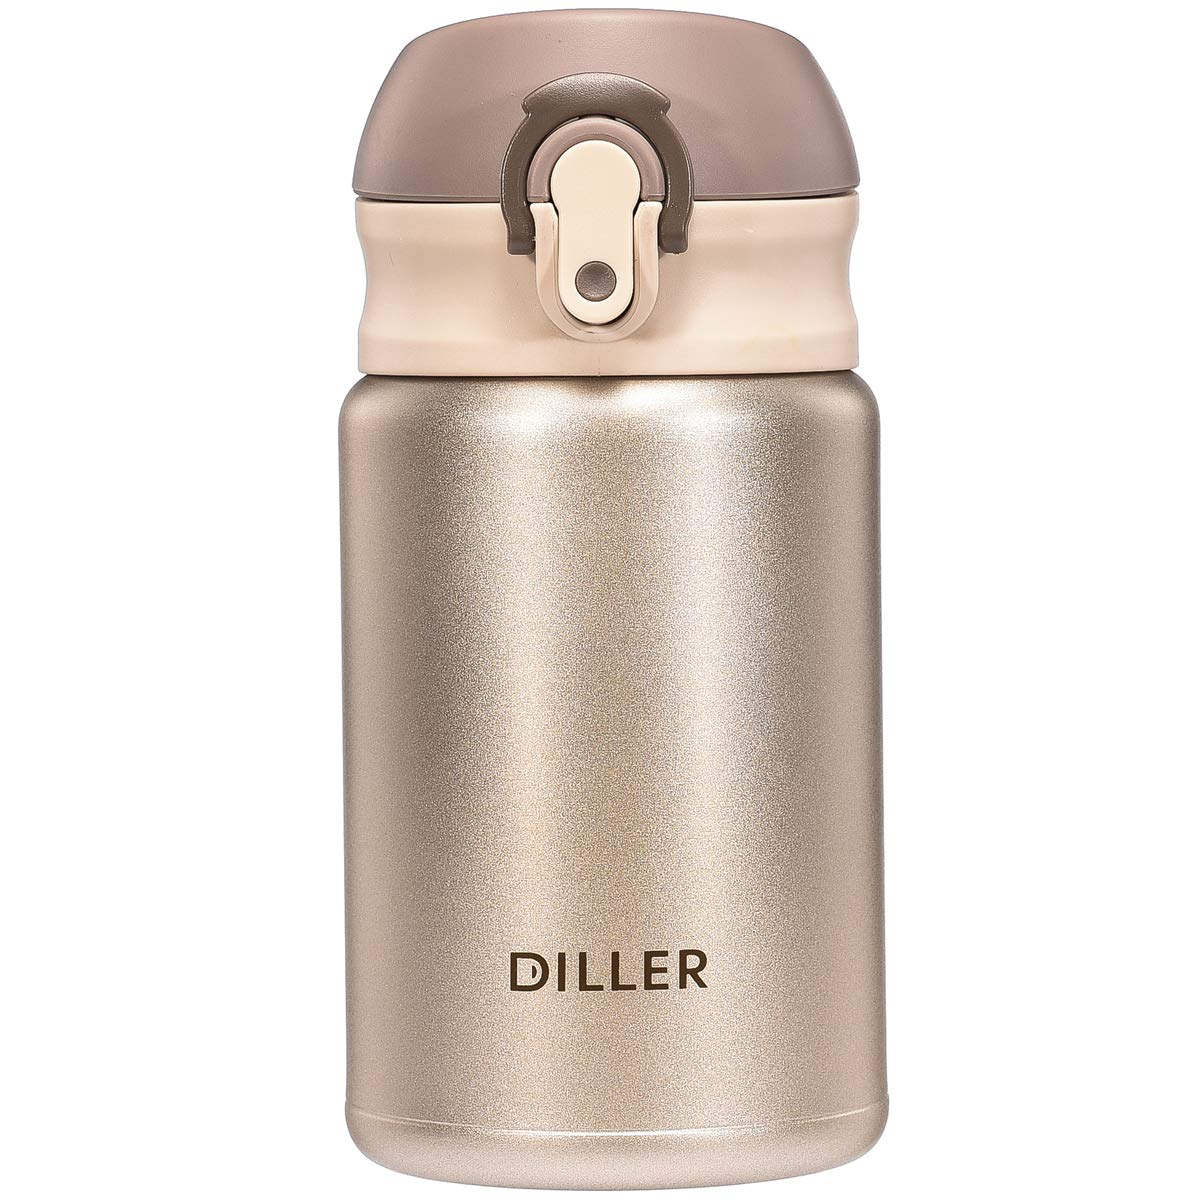 Diller Thermos Water Bottle - 10 Oz Mini Insulated Stainless Steel Bottle, Leakproof Cute Vacuum Flask, Perfect for Purse or Kids Lunch Bag, 12 Hours Hot & 24 Hours Cold (Gold, 10 oz)